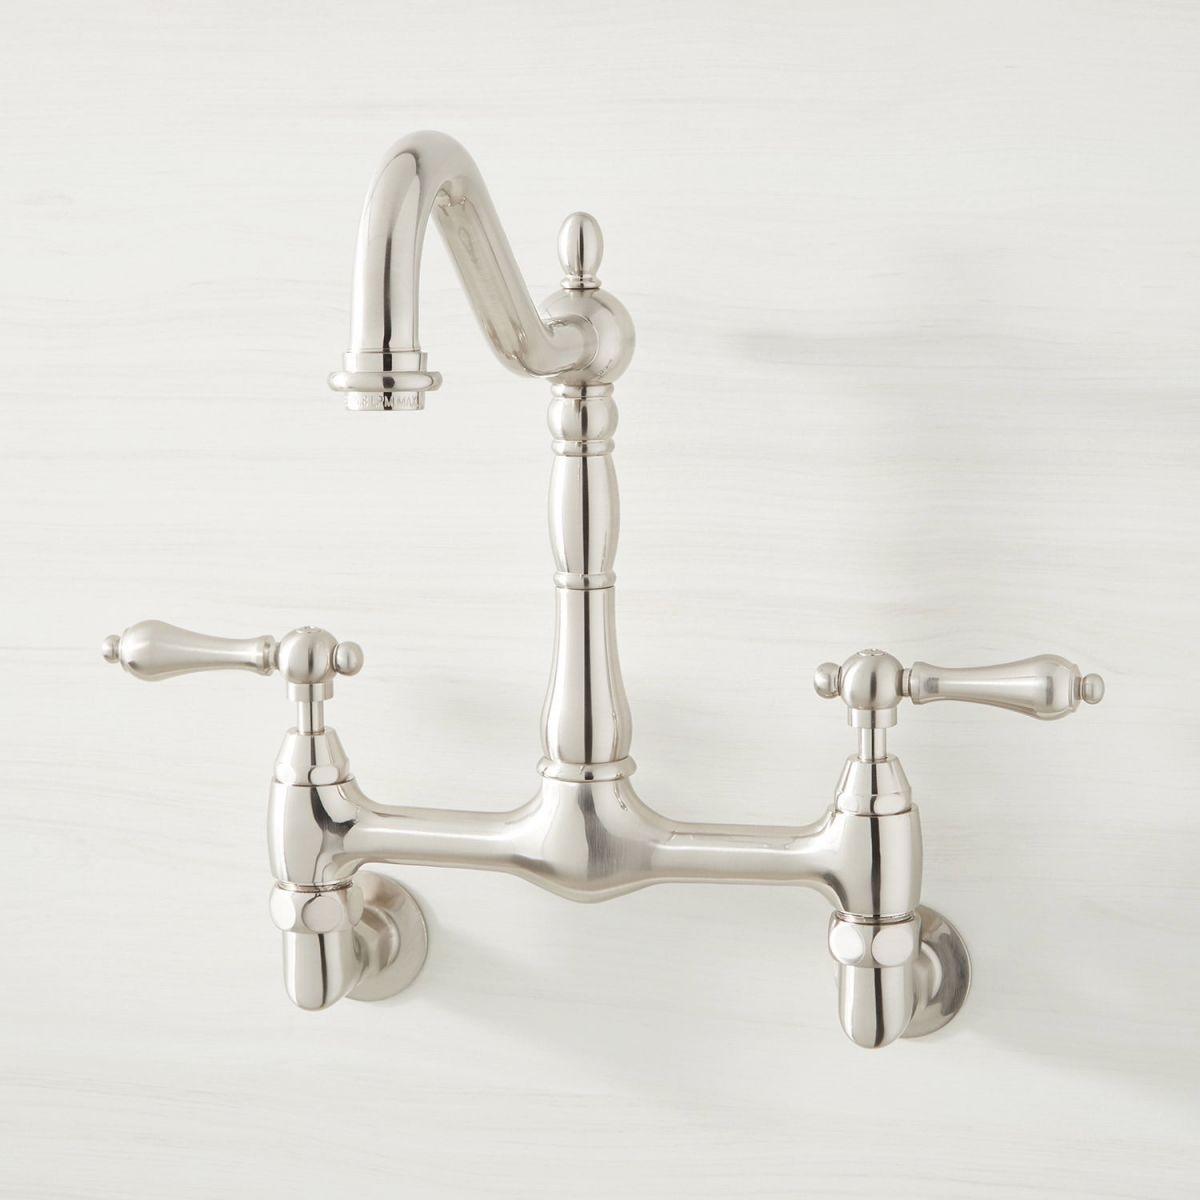 Felicity Wall-Mount Kitchen Faucet within New Wall Mount Kitchen Faucet